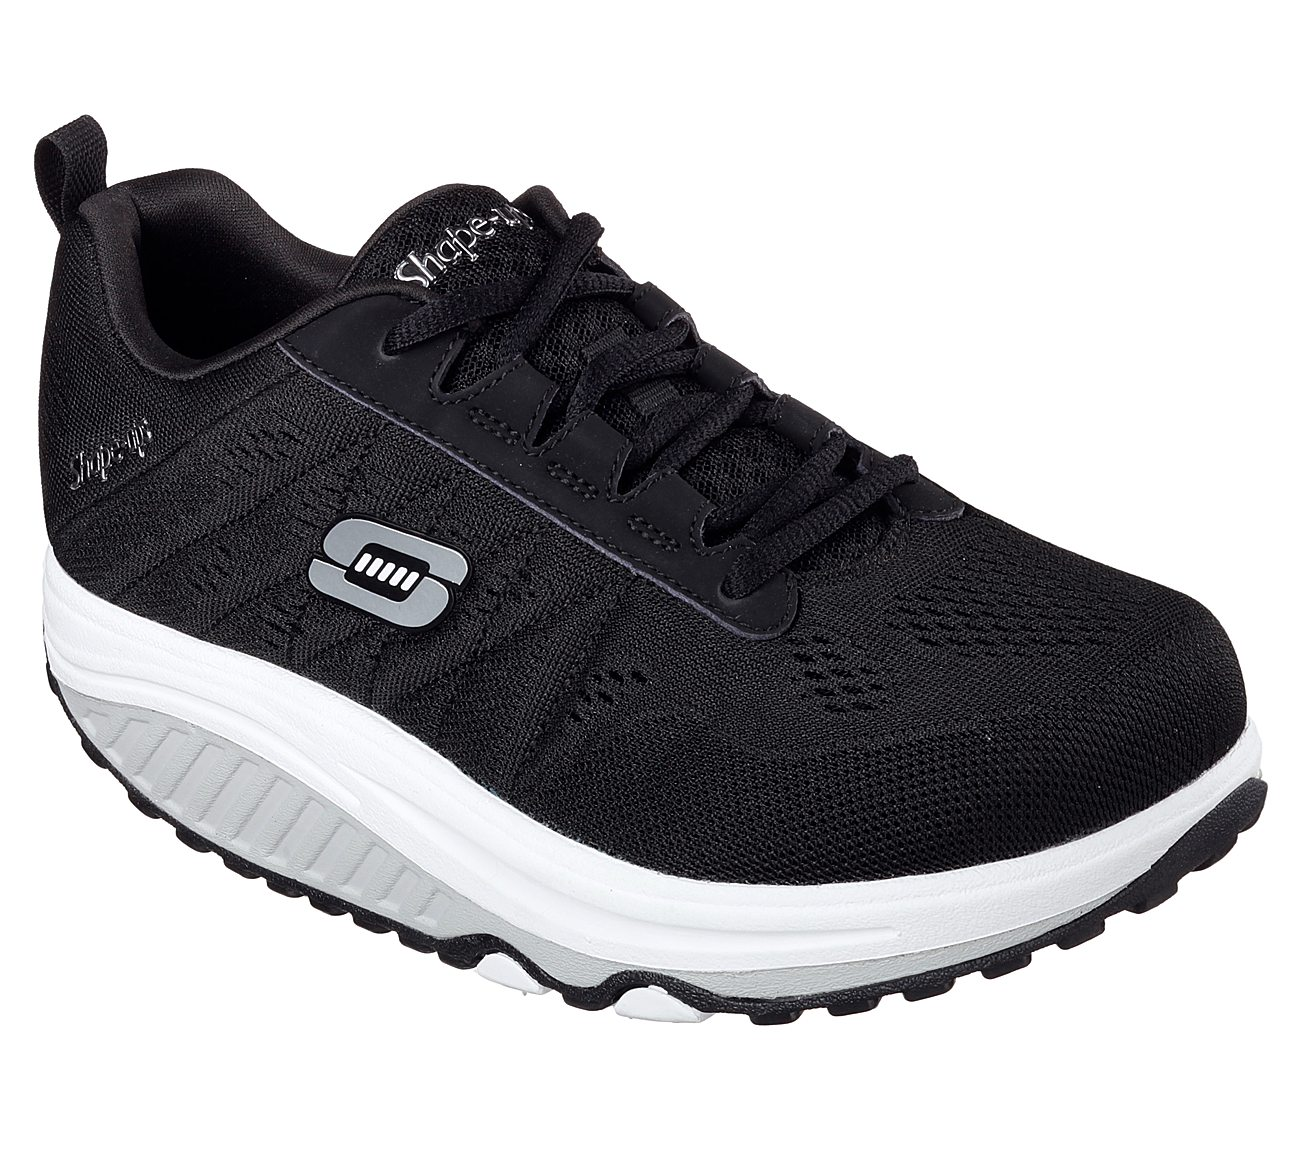 SKECHERS Shape-ups Shoes